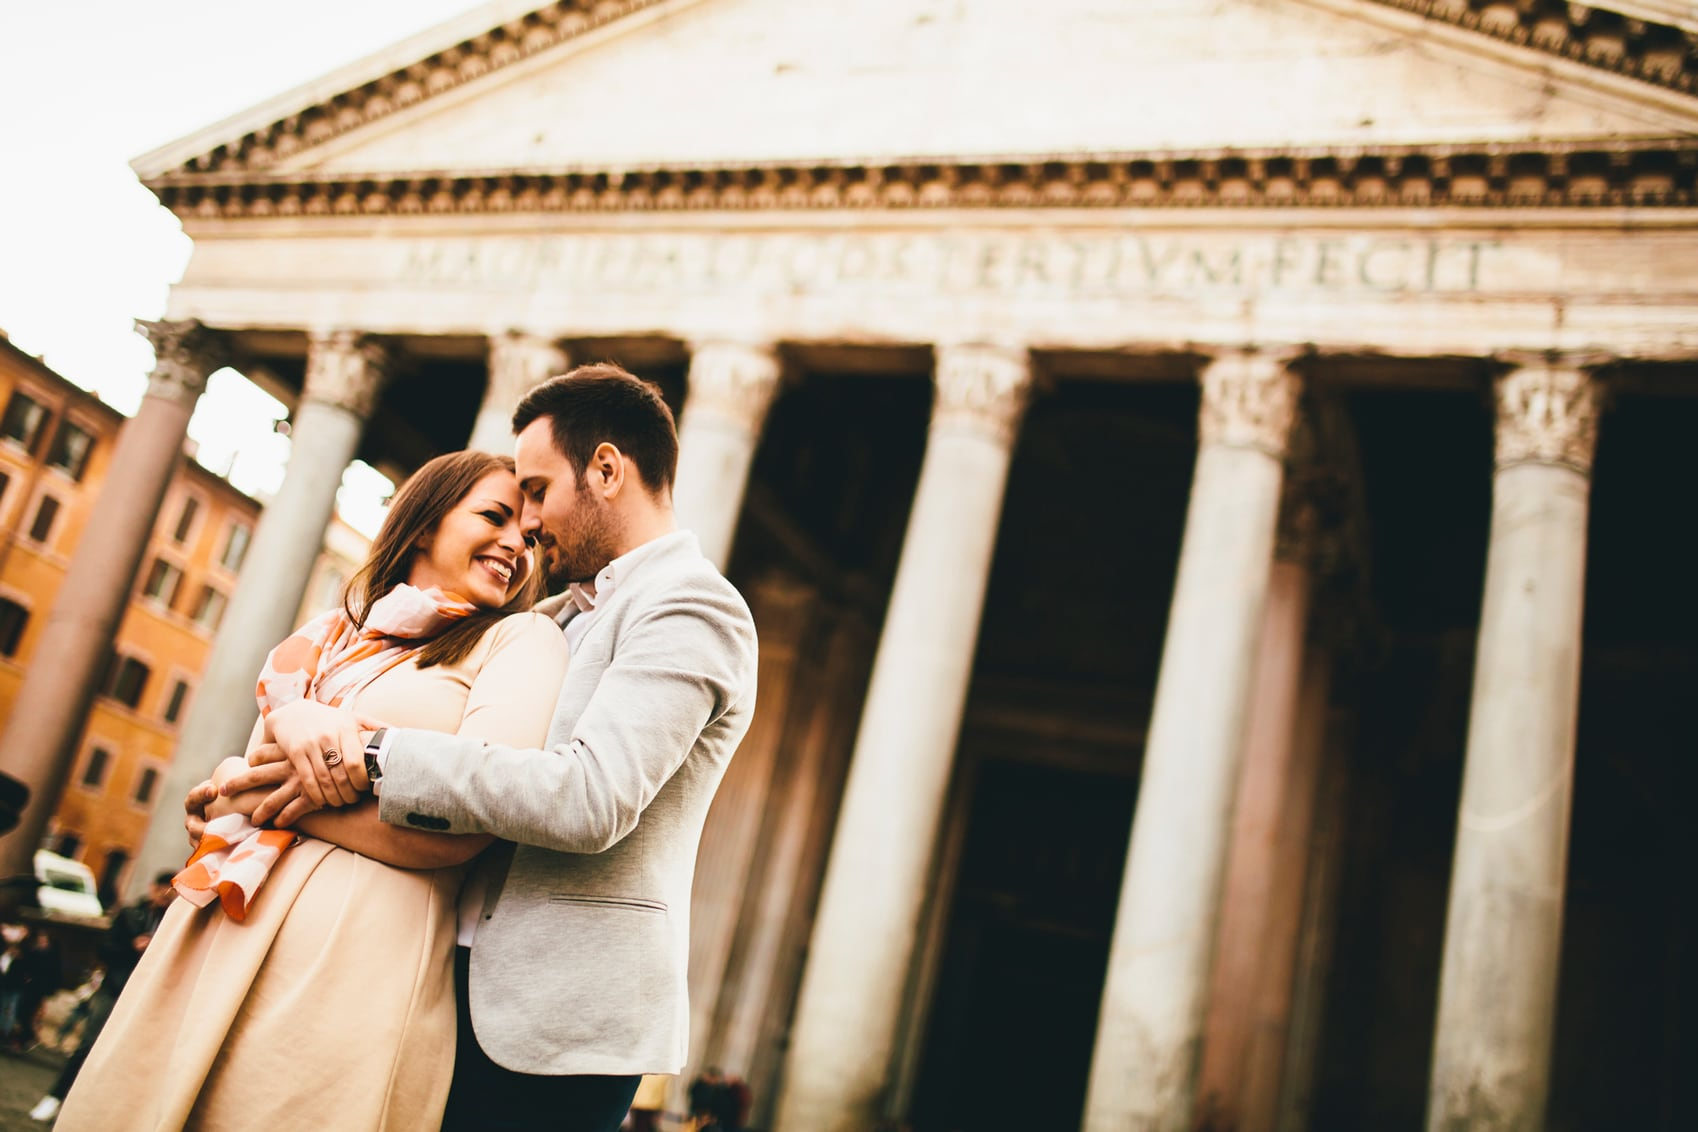 Romantic Things to do in Rome Loving-couple-in-front-of-Pantheon-www.istockphoto.comgbphotoloving-couple-in-front-of-the-pantheon-in-rome-gm657772654-119909569-boggy22